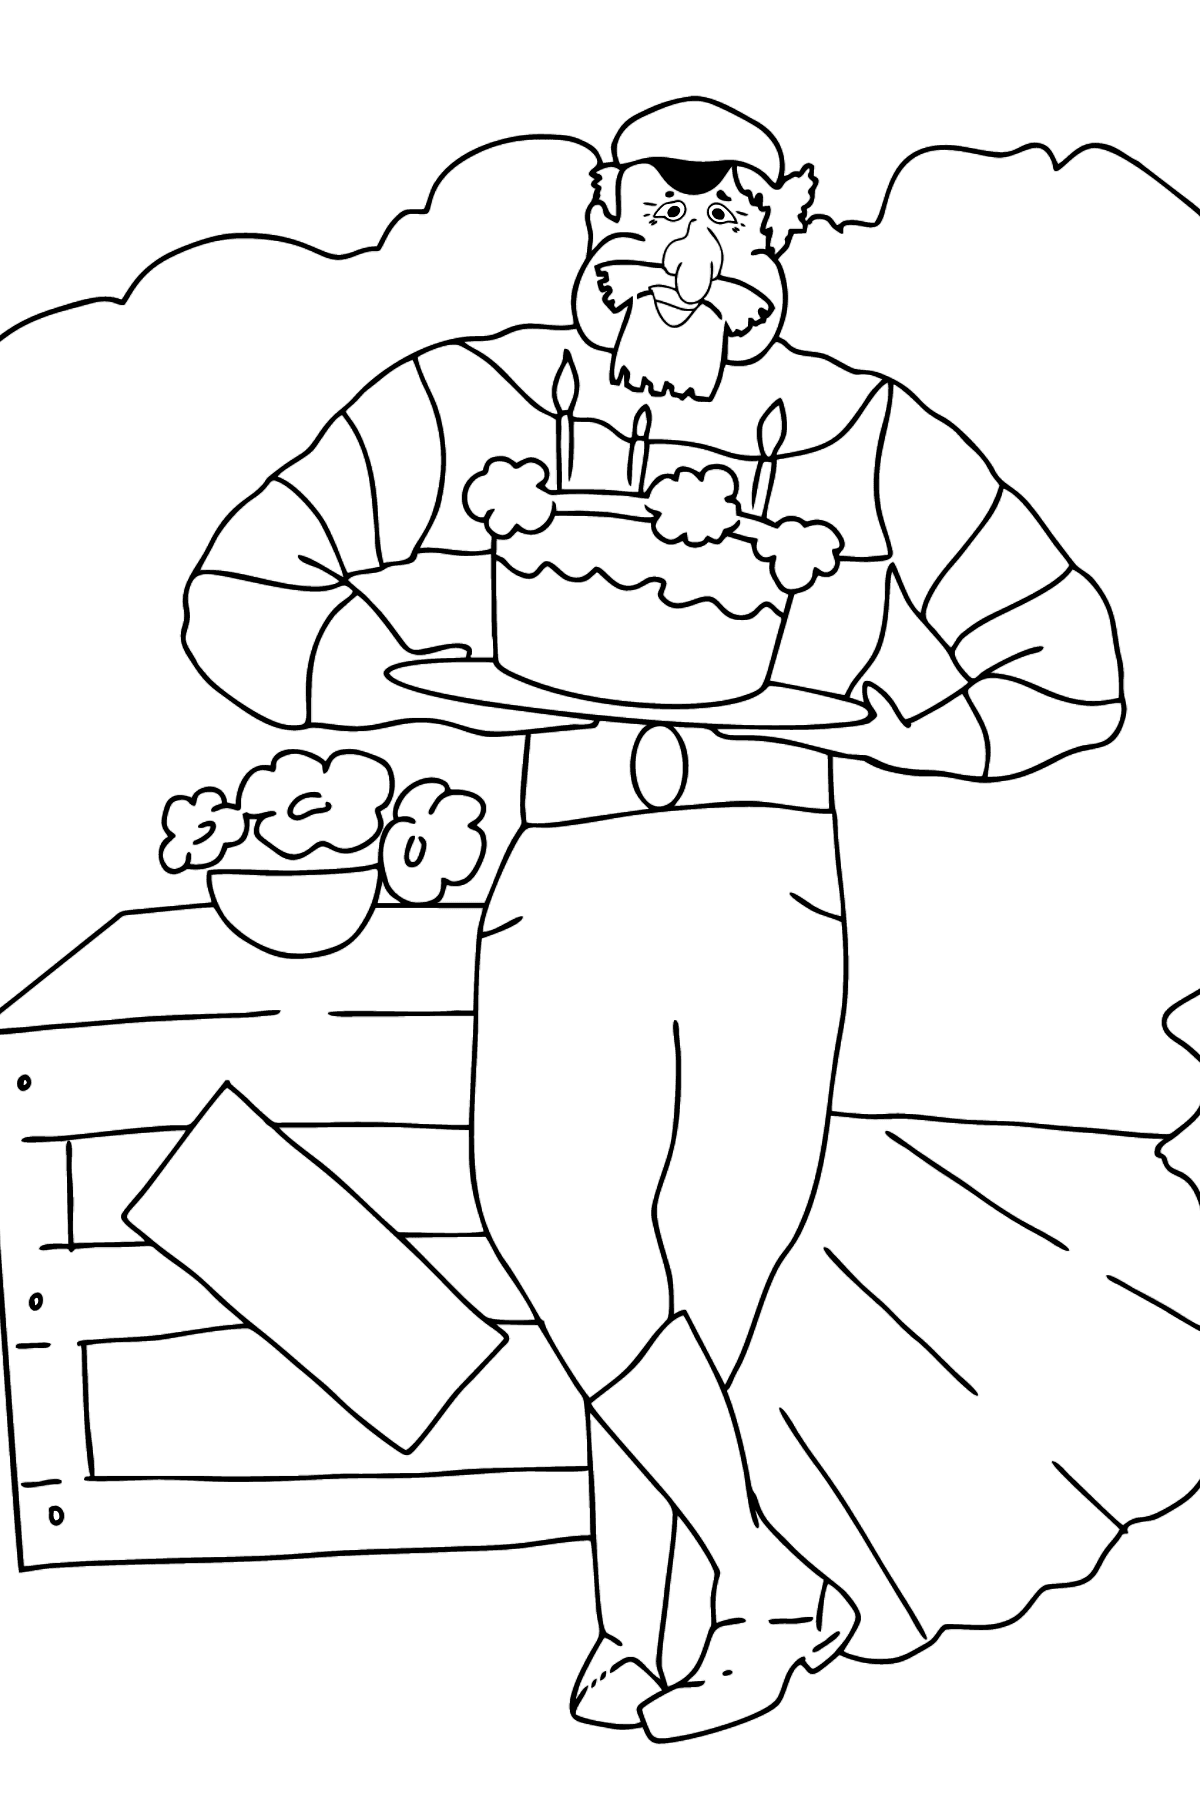 Coloring Page - A Pirate with Cake - Coloring Pages for Kids